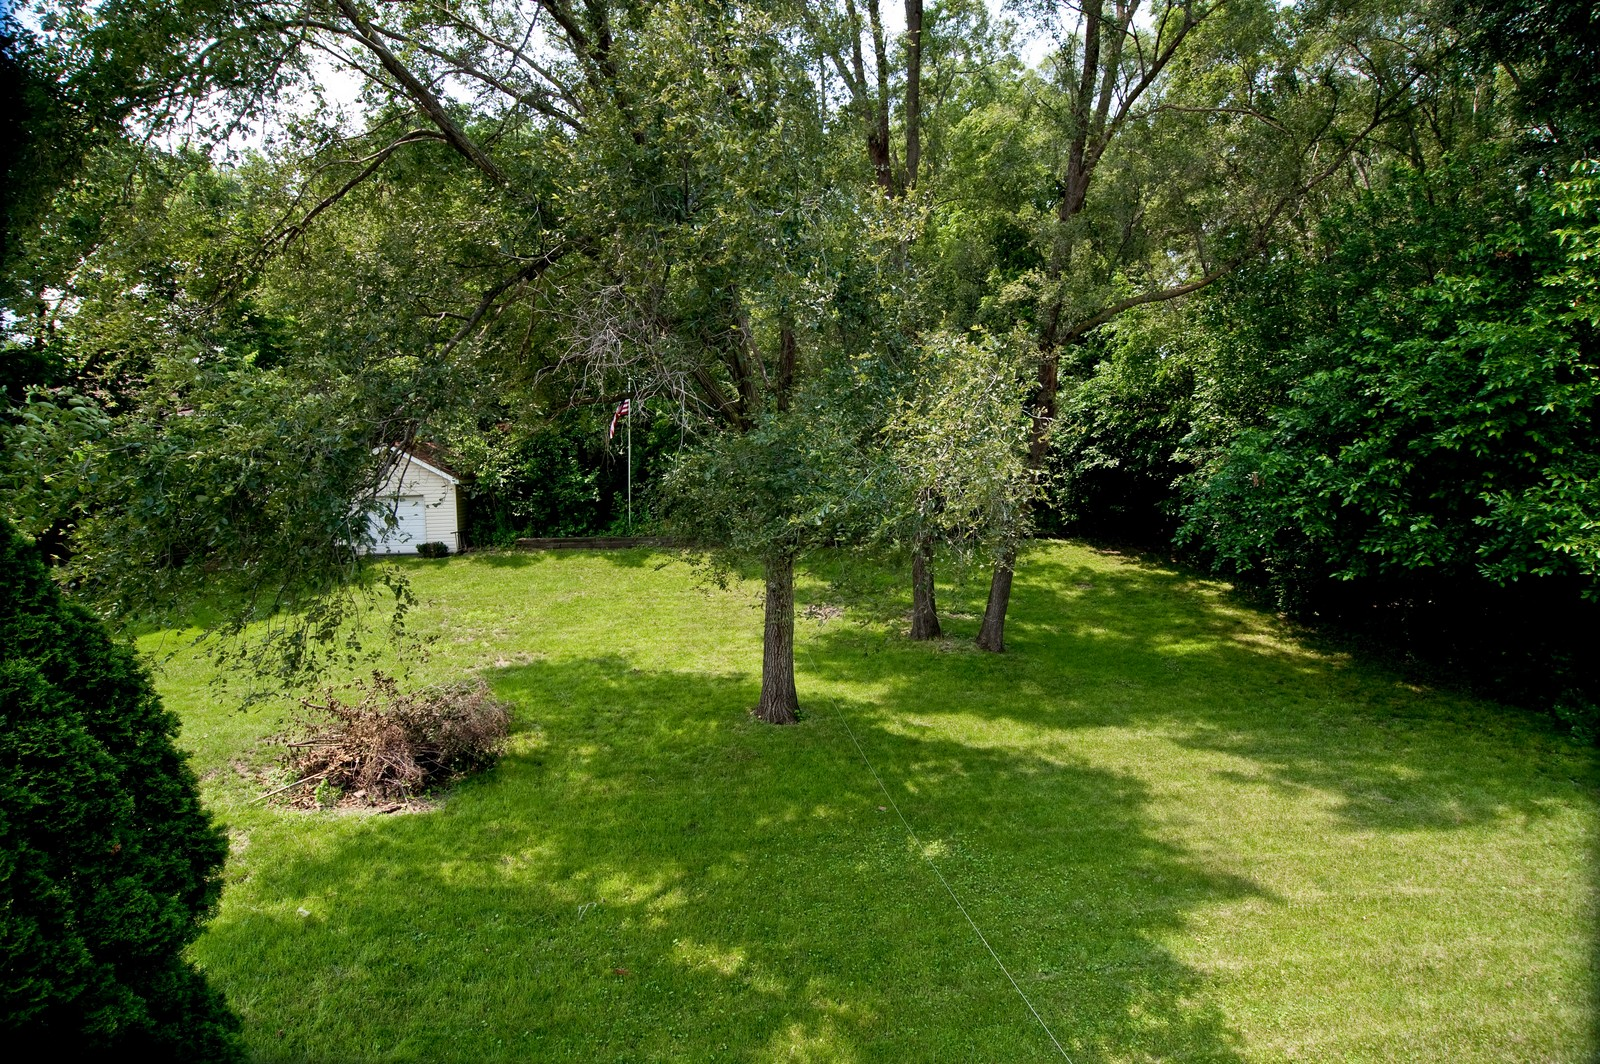 Real Estate Photography - 22816 S Michael Dr, Channahon, IL, 60410 - Location 1